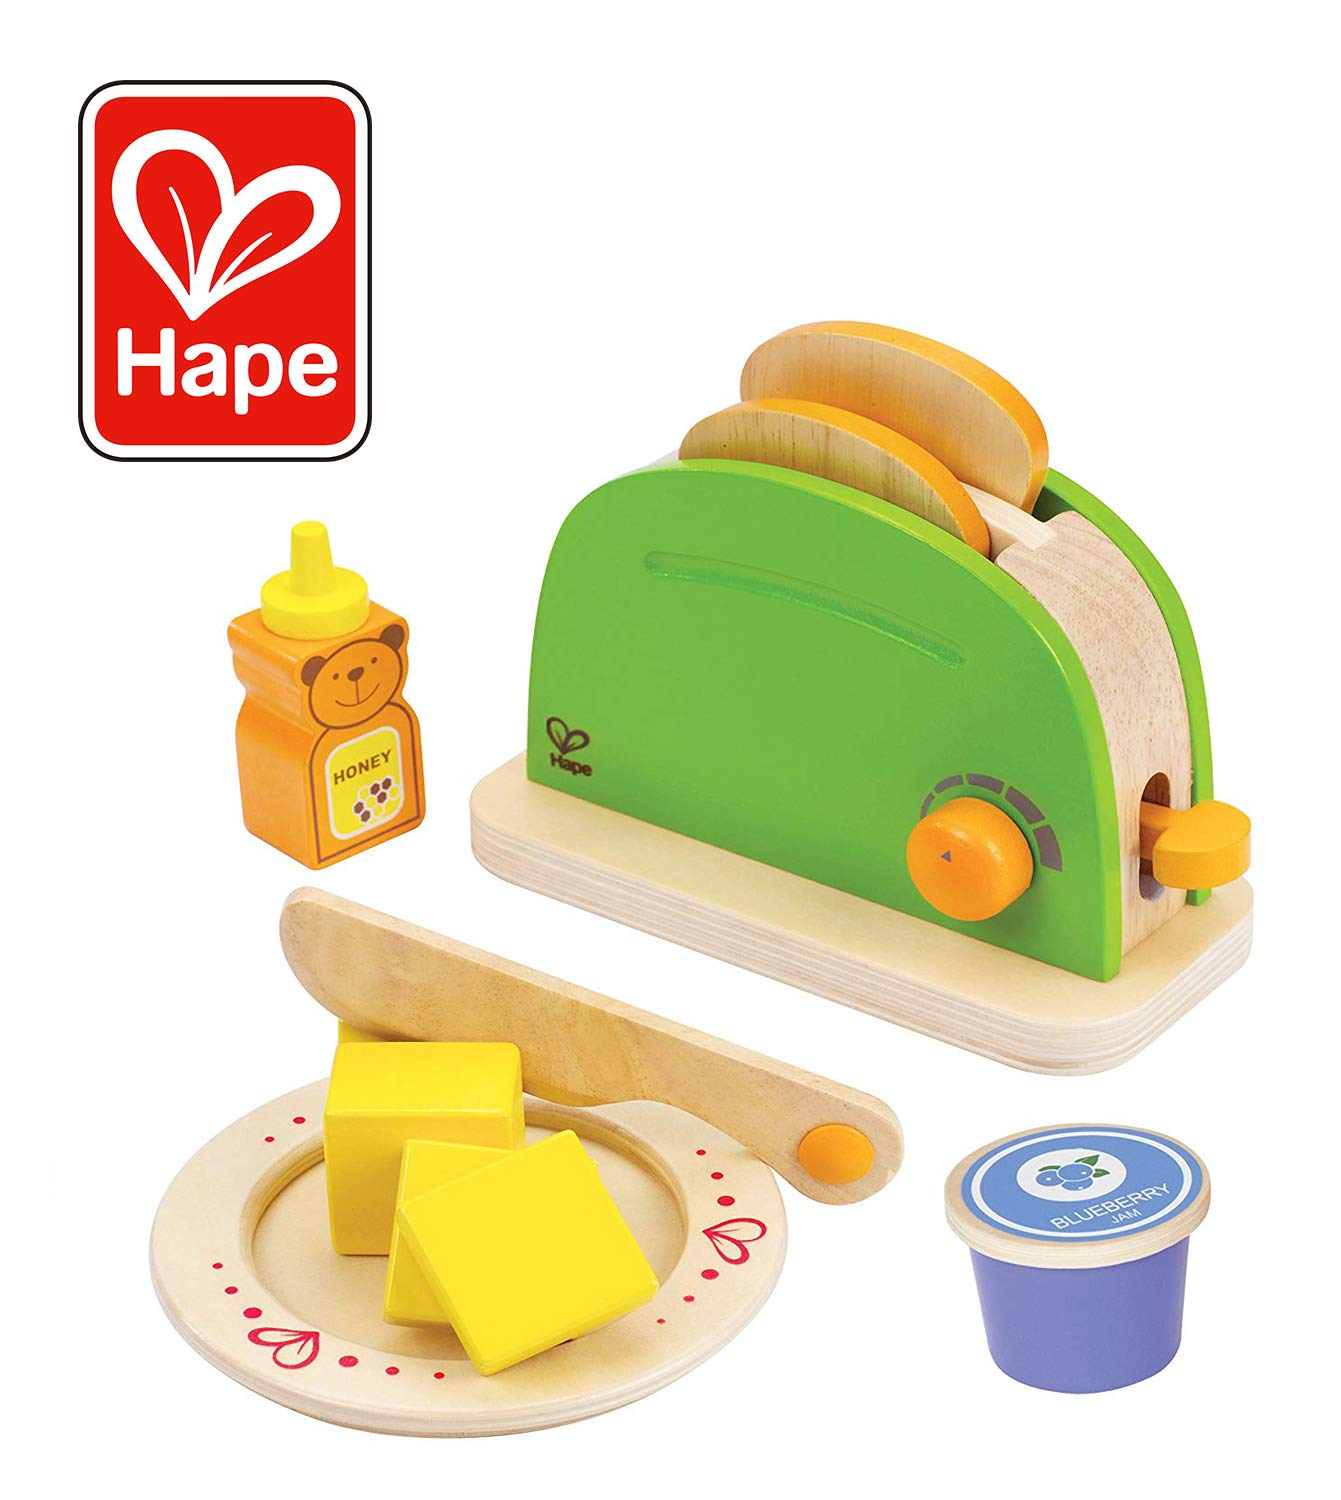 Hape - Playfully Delicious - Pop Up Toaster Wooden Play Kitchen Set with BONUS Blueberry Jam by Hape